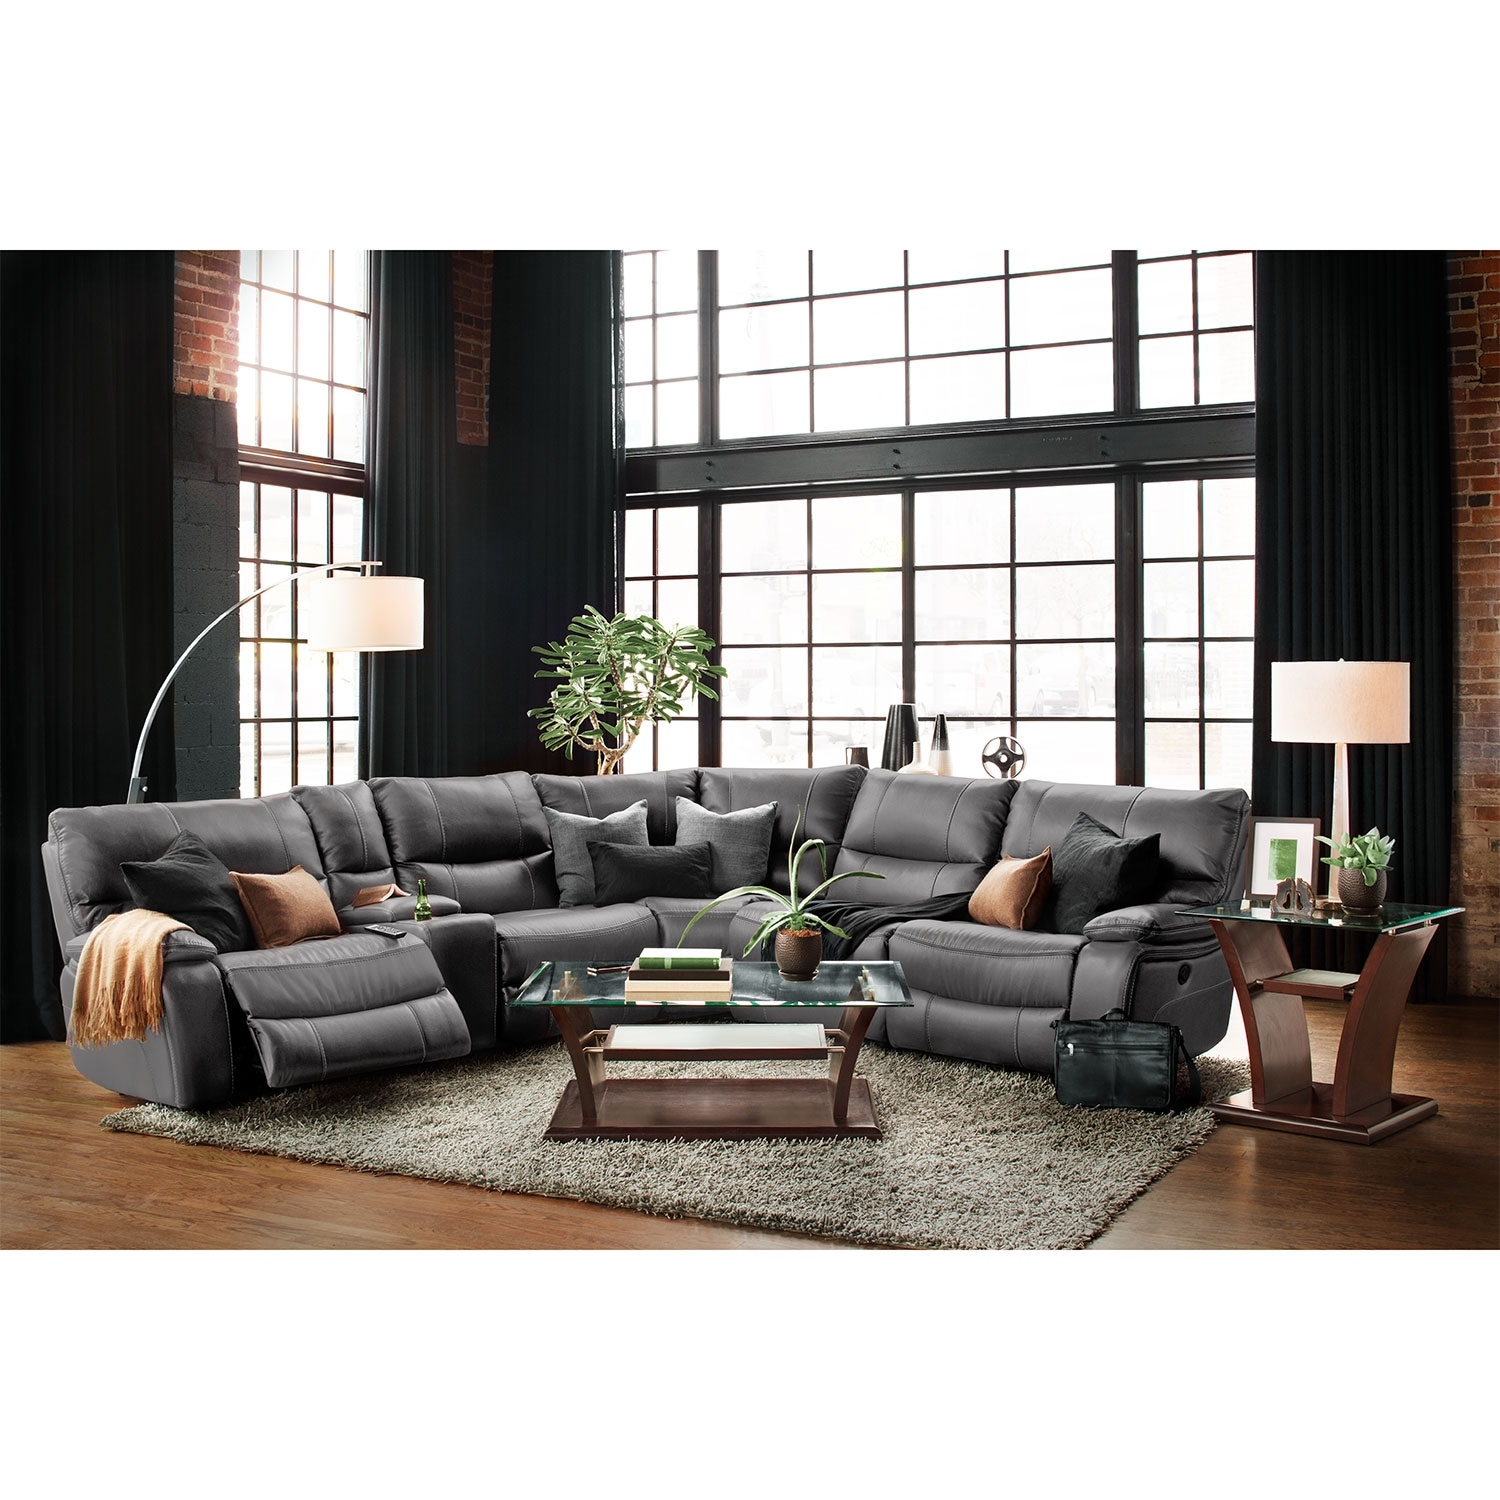 Orlando 6 pc power reclining sectional alternate for 6 pc sectional living room